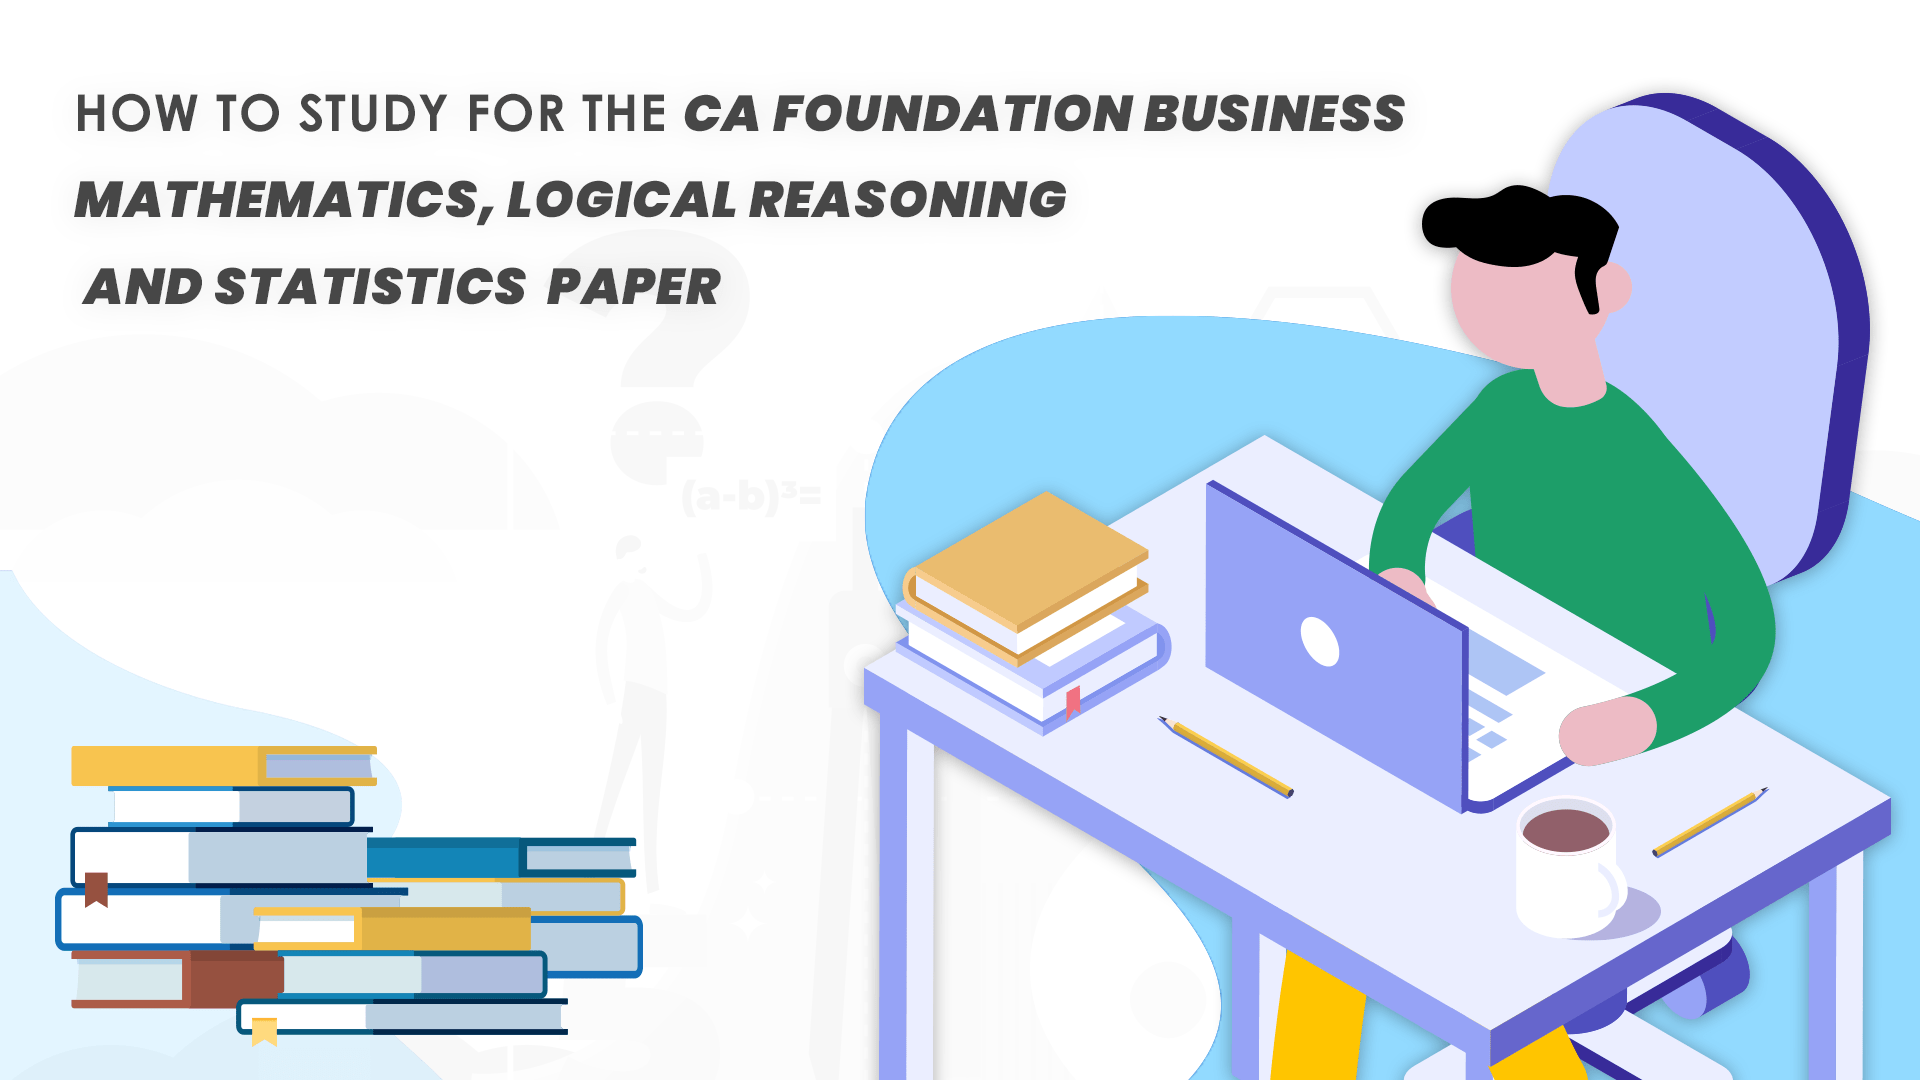 How to Study for the CA Foundation Business Mathematics, Logical Reasoning and Statistics Paper